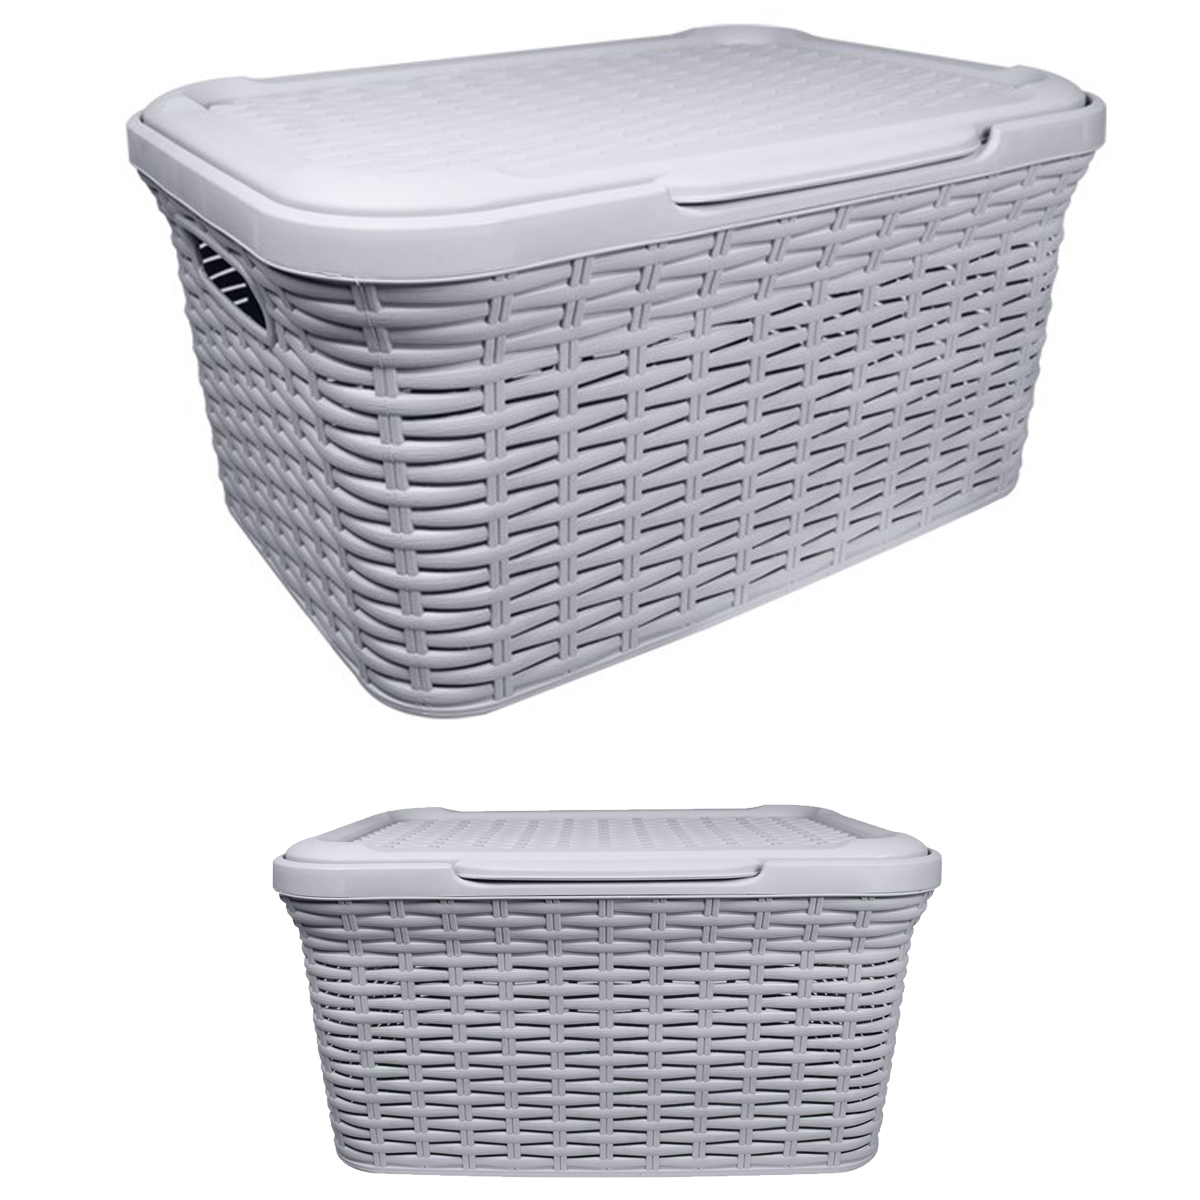 New 27l Rattan Effect Laundry Storage Basket Container Box